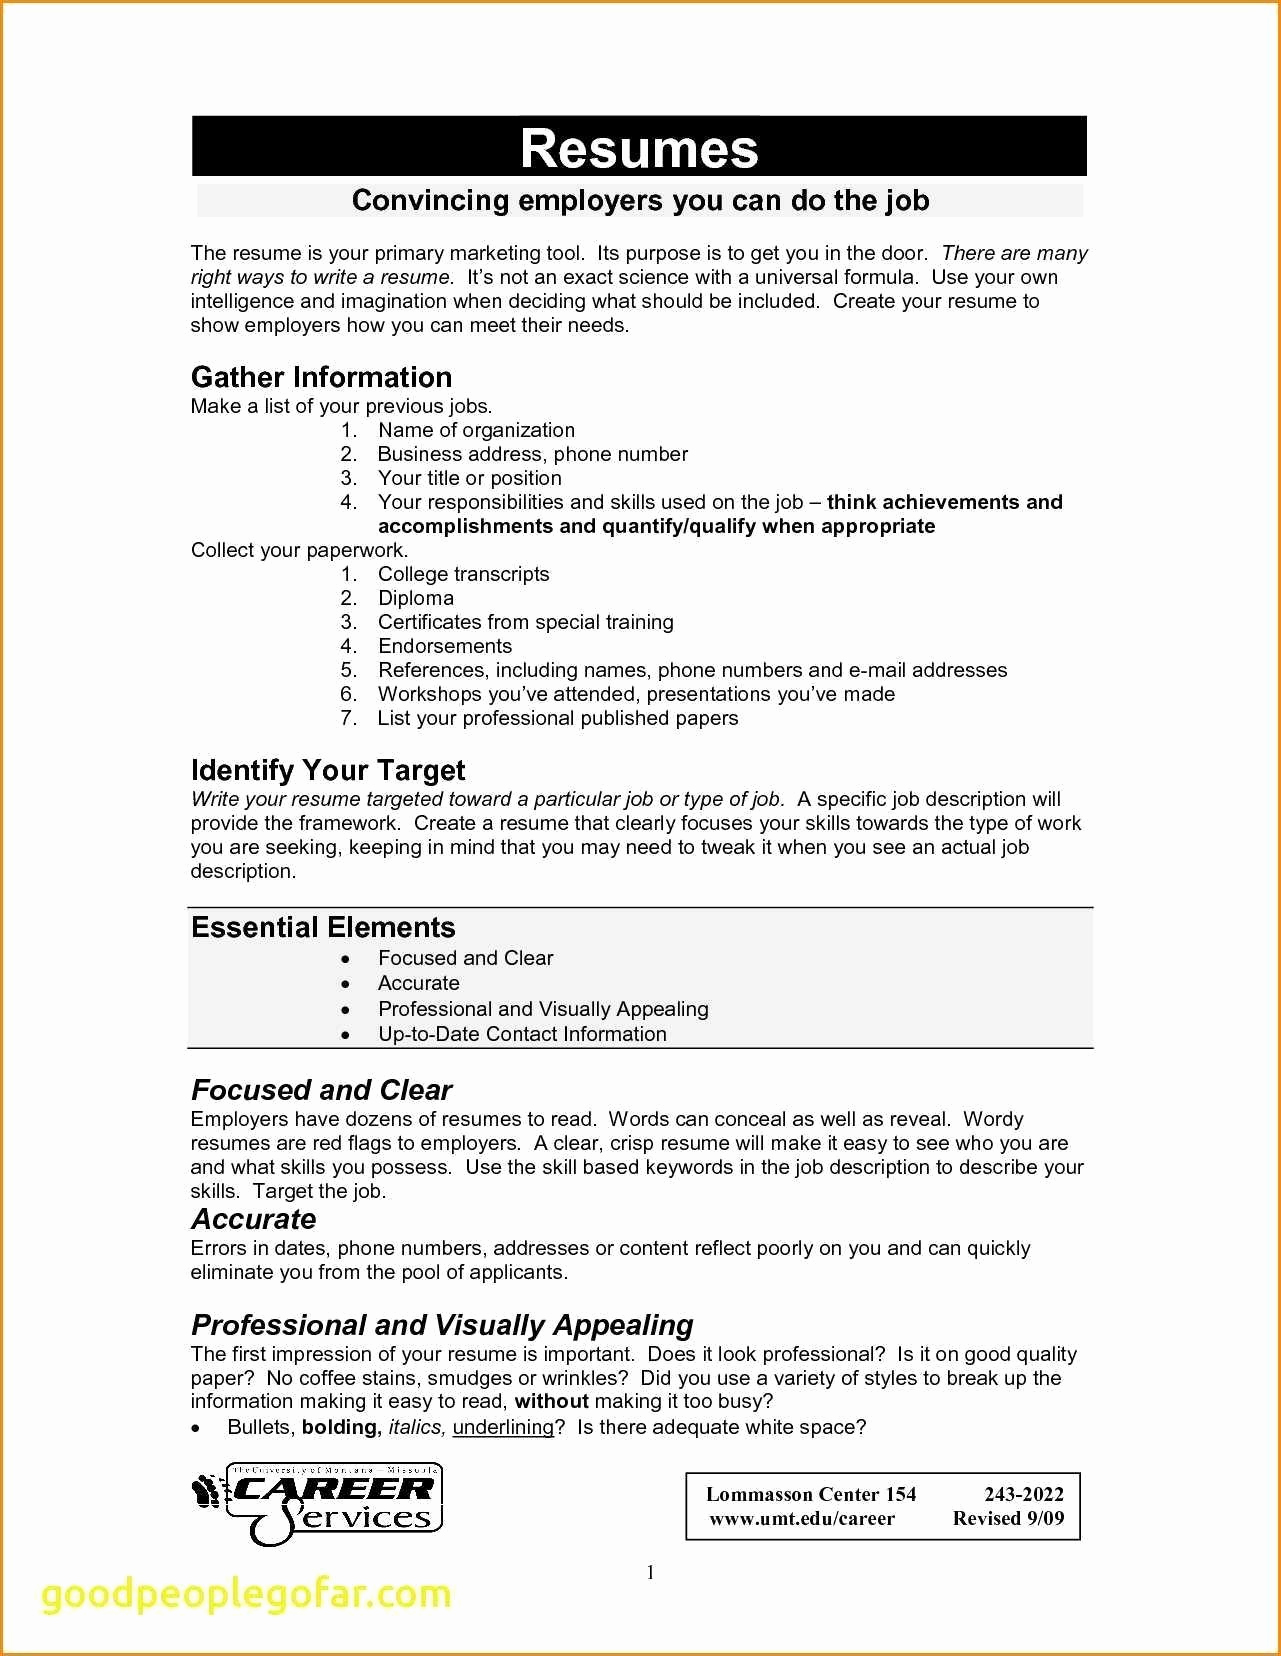 Components Of A Resume - Ponents A Resume Professional Baseball Player Resume